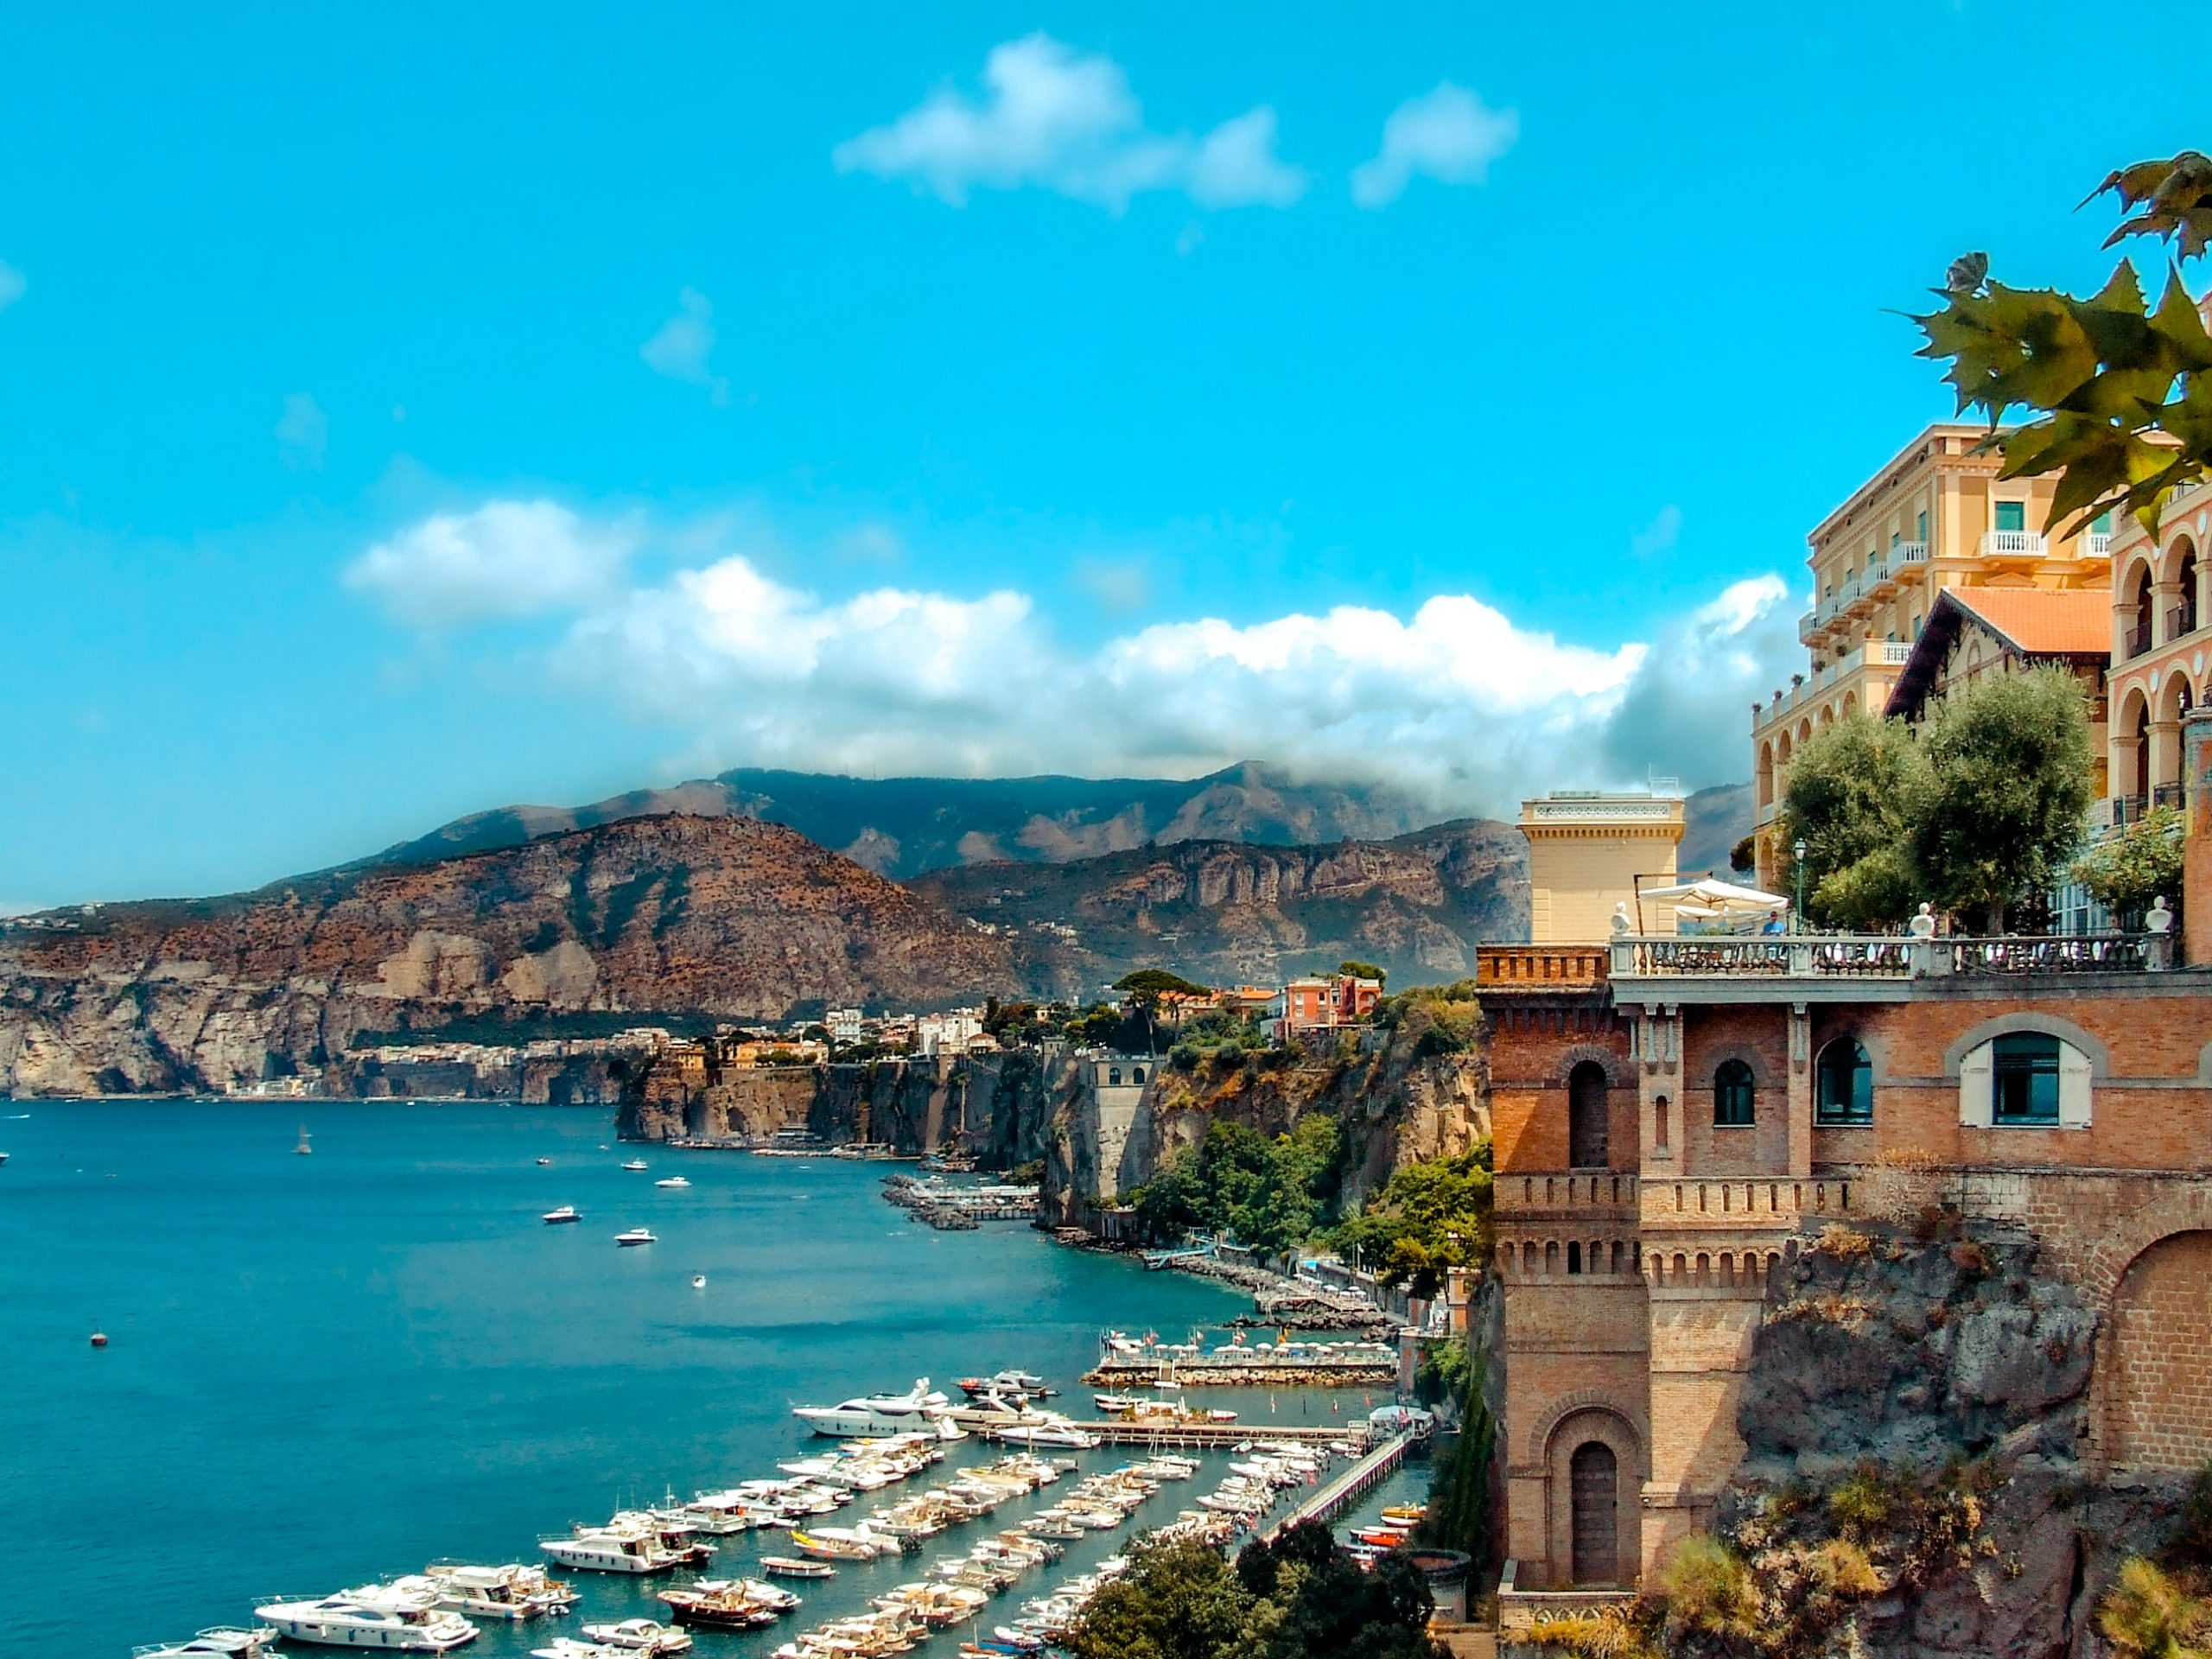 Capri-Rugged Landscape Upscale Hotels and Shopping